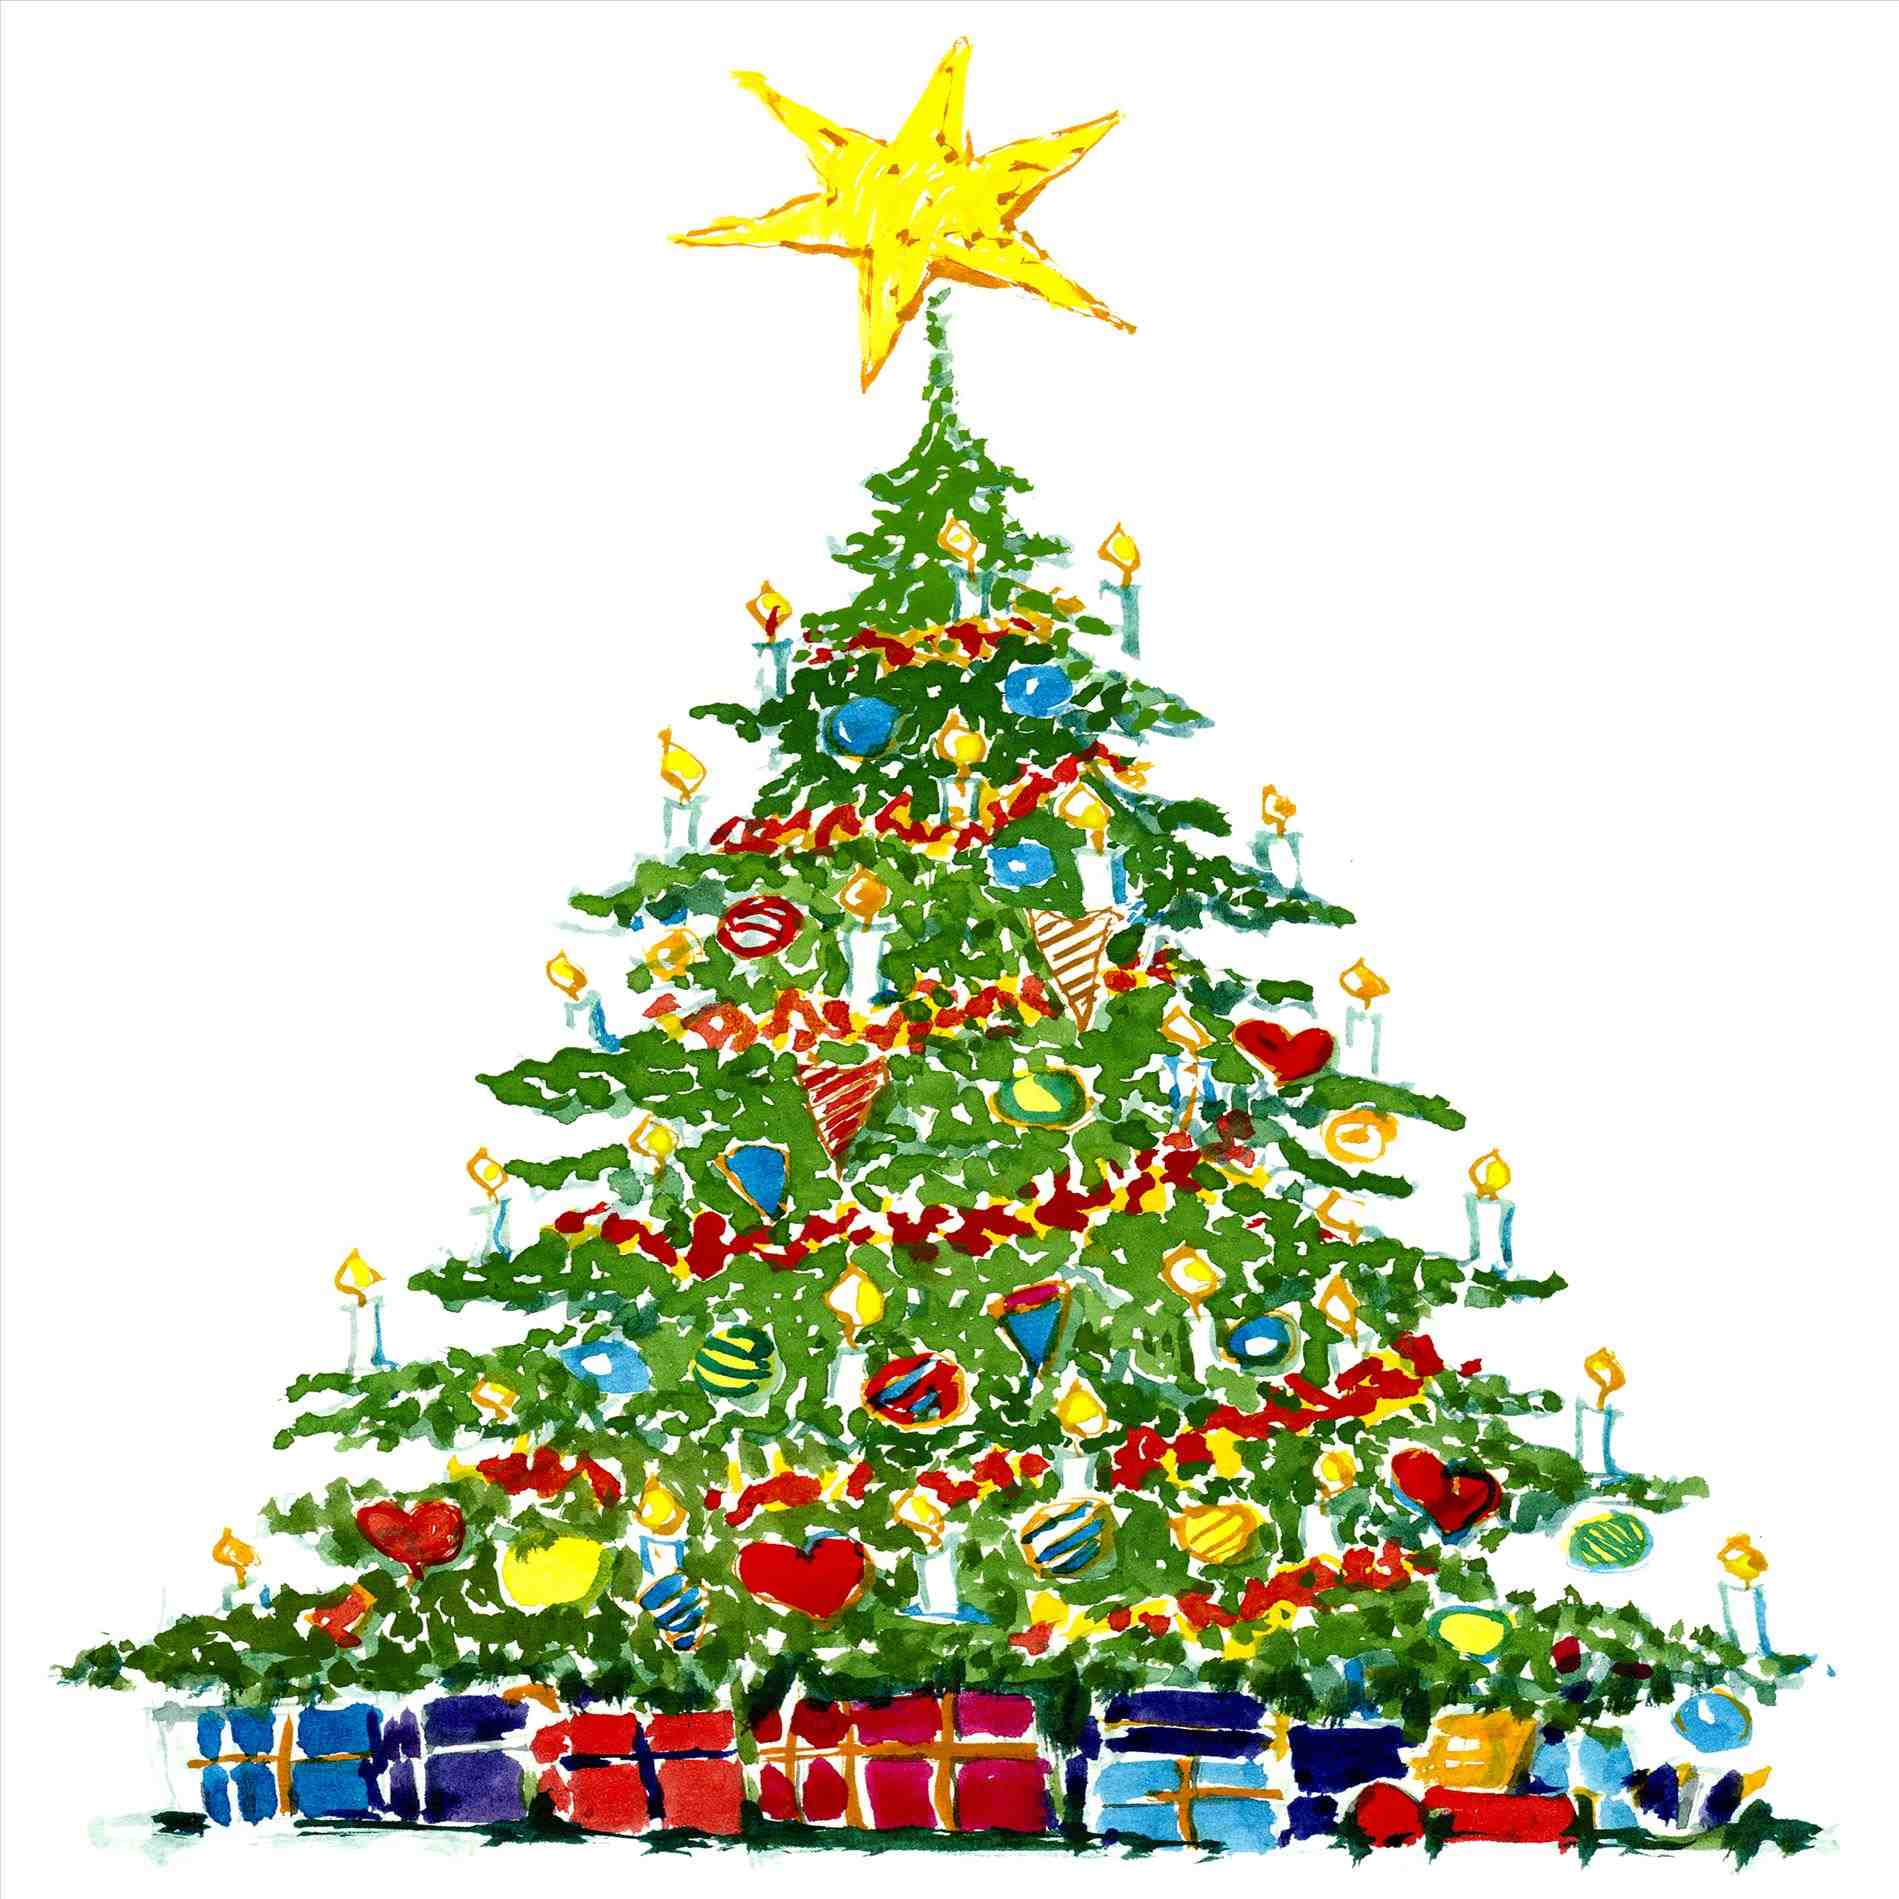 1899x1899 Art Graphic Graphic Christmas Tree With Presents Clipart Free